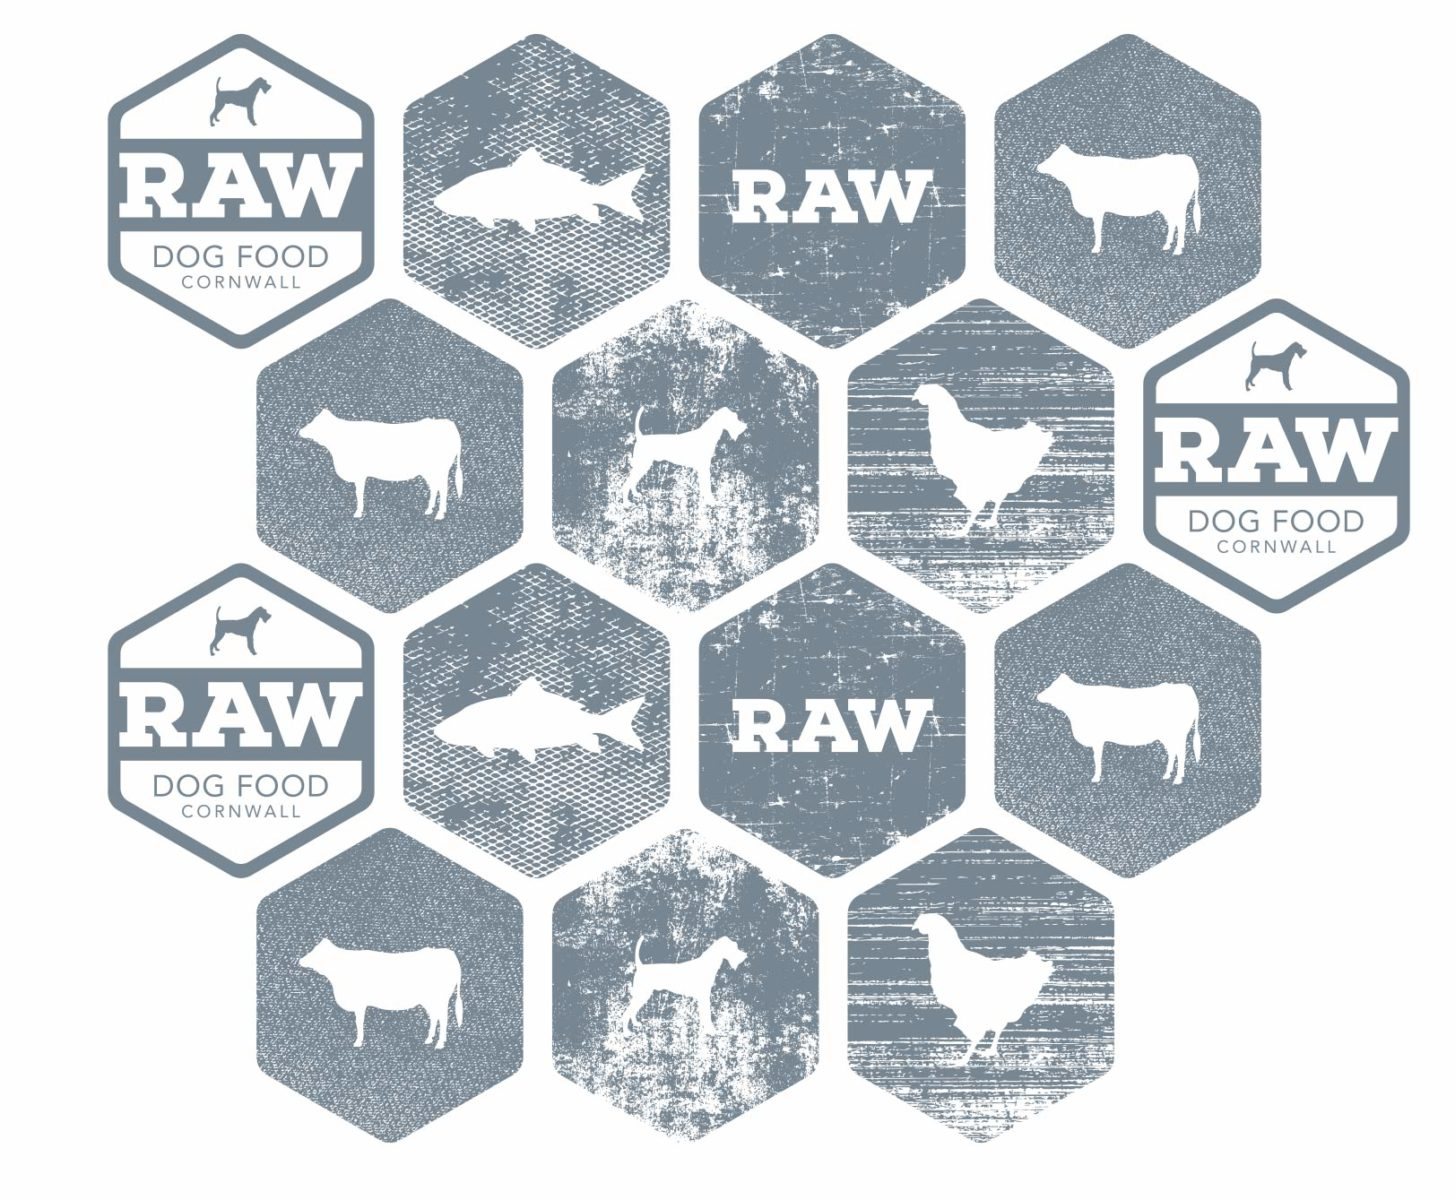 Raw Dog Food Cornwall Your Local Online Dog Food Service